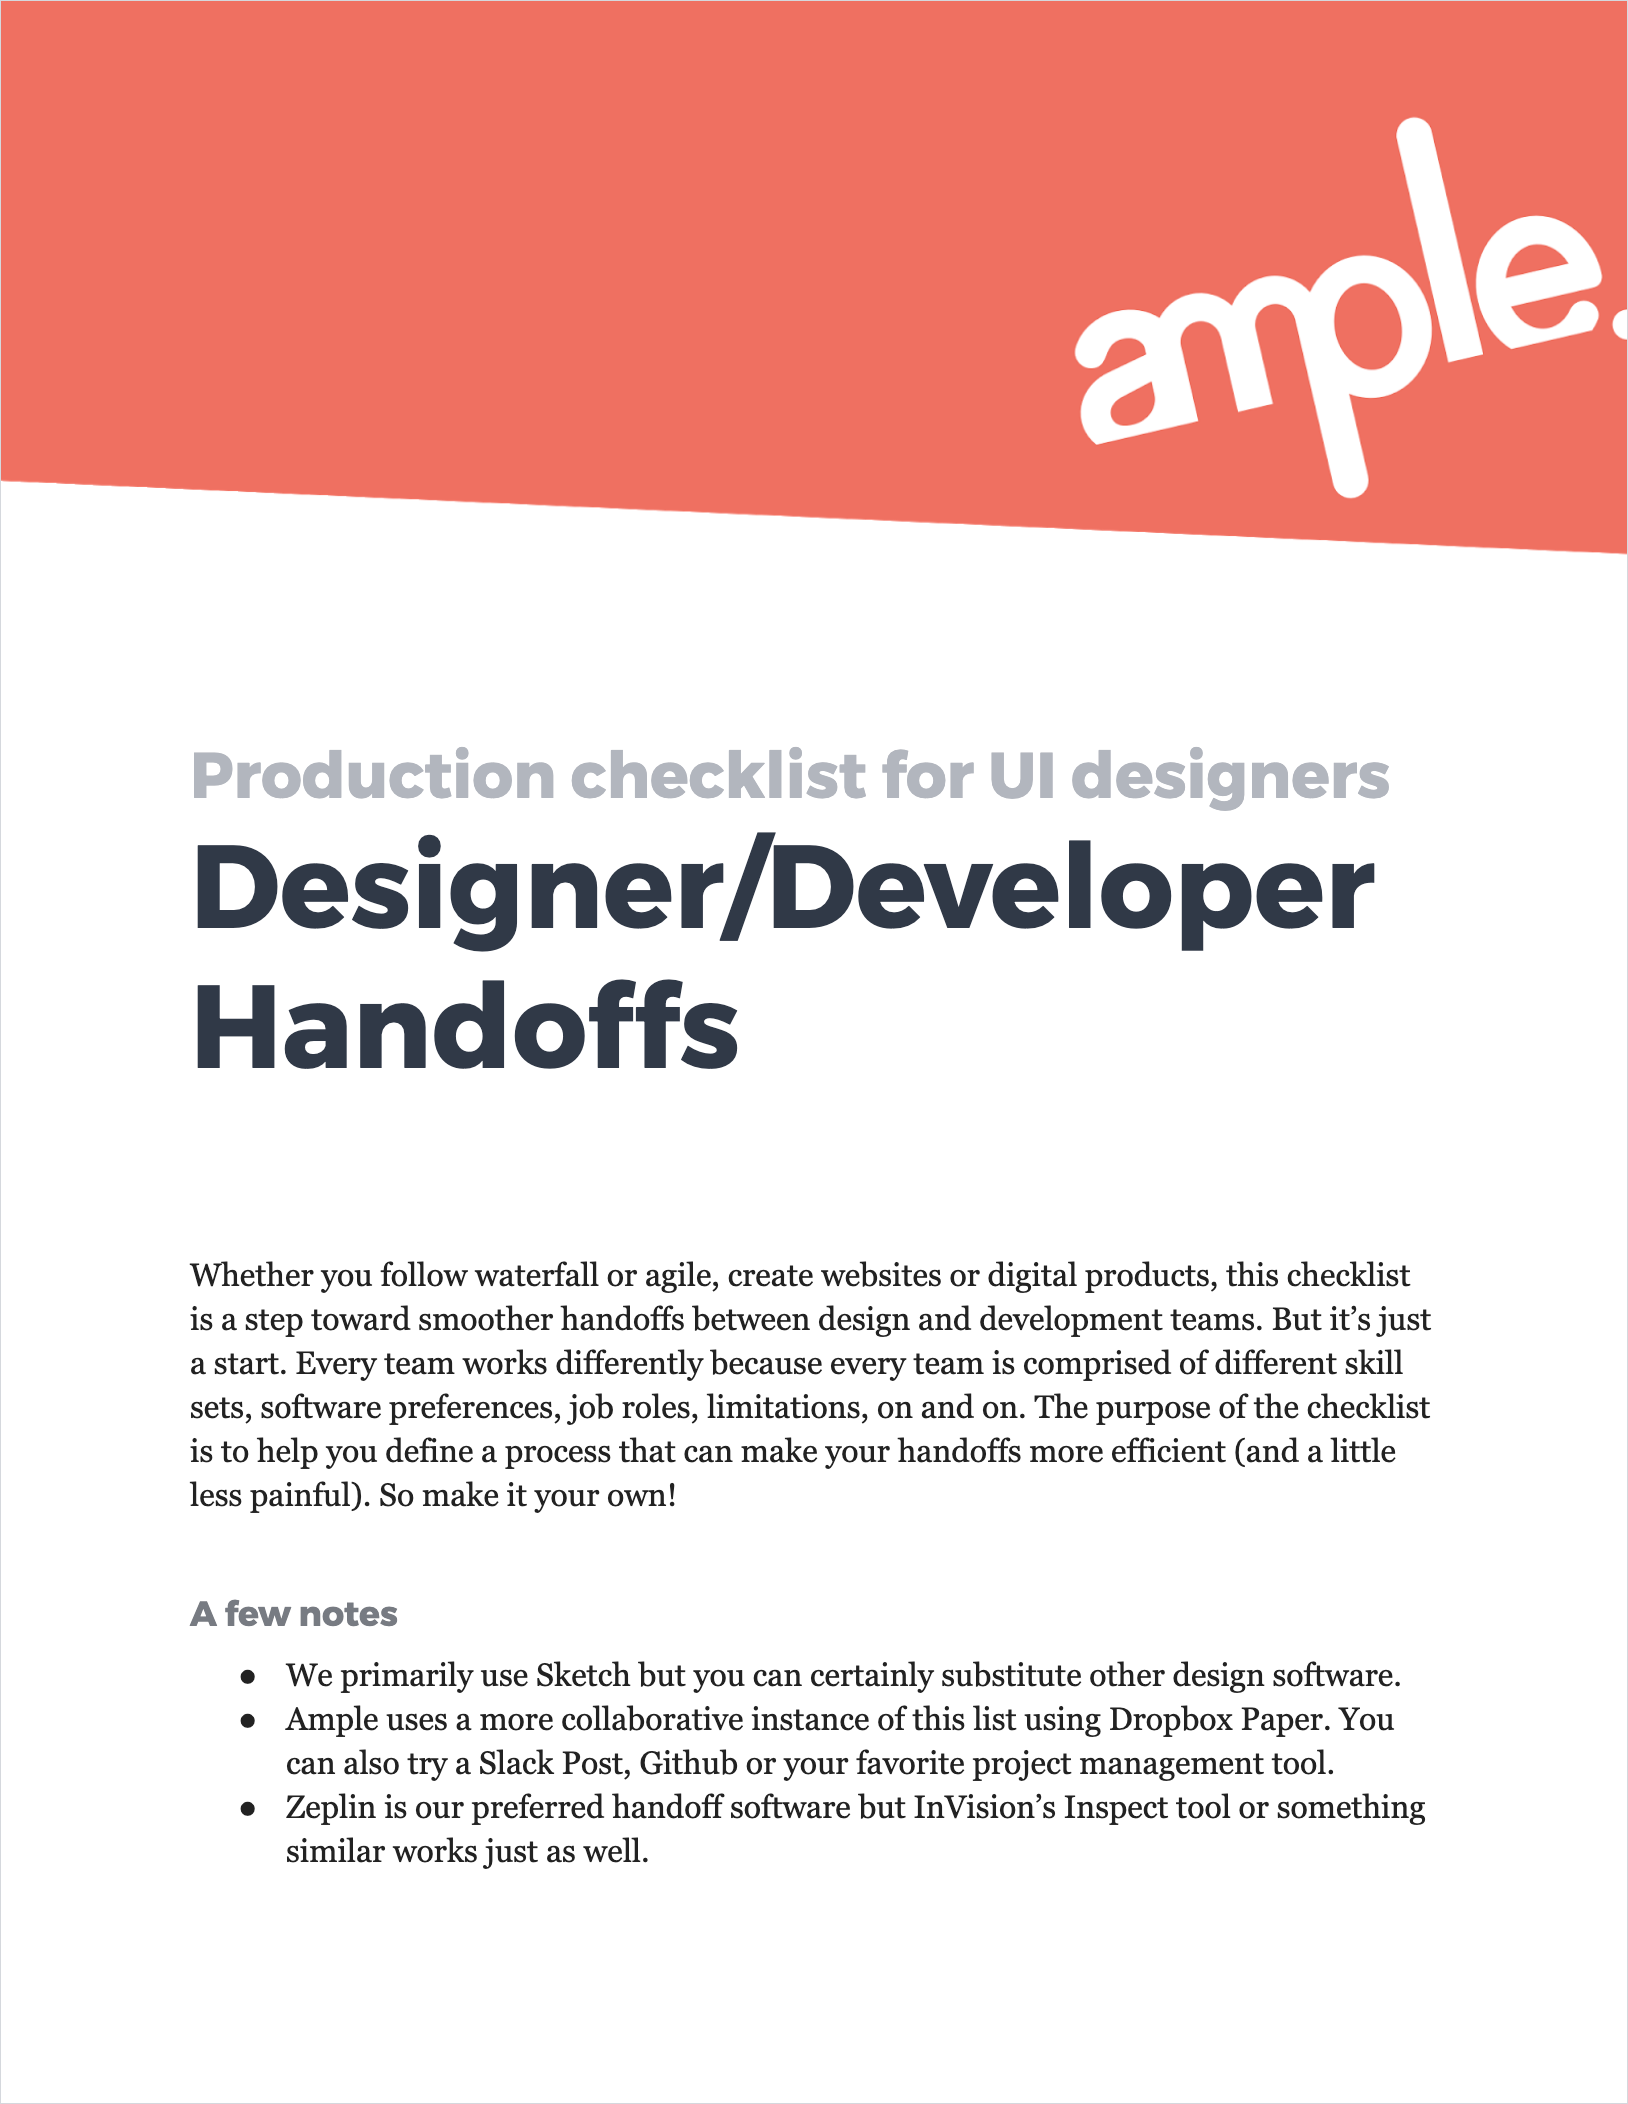 Ample's Designer/Developer Handoffs Checklist (PDF)